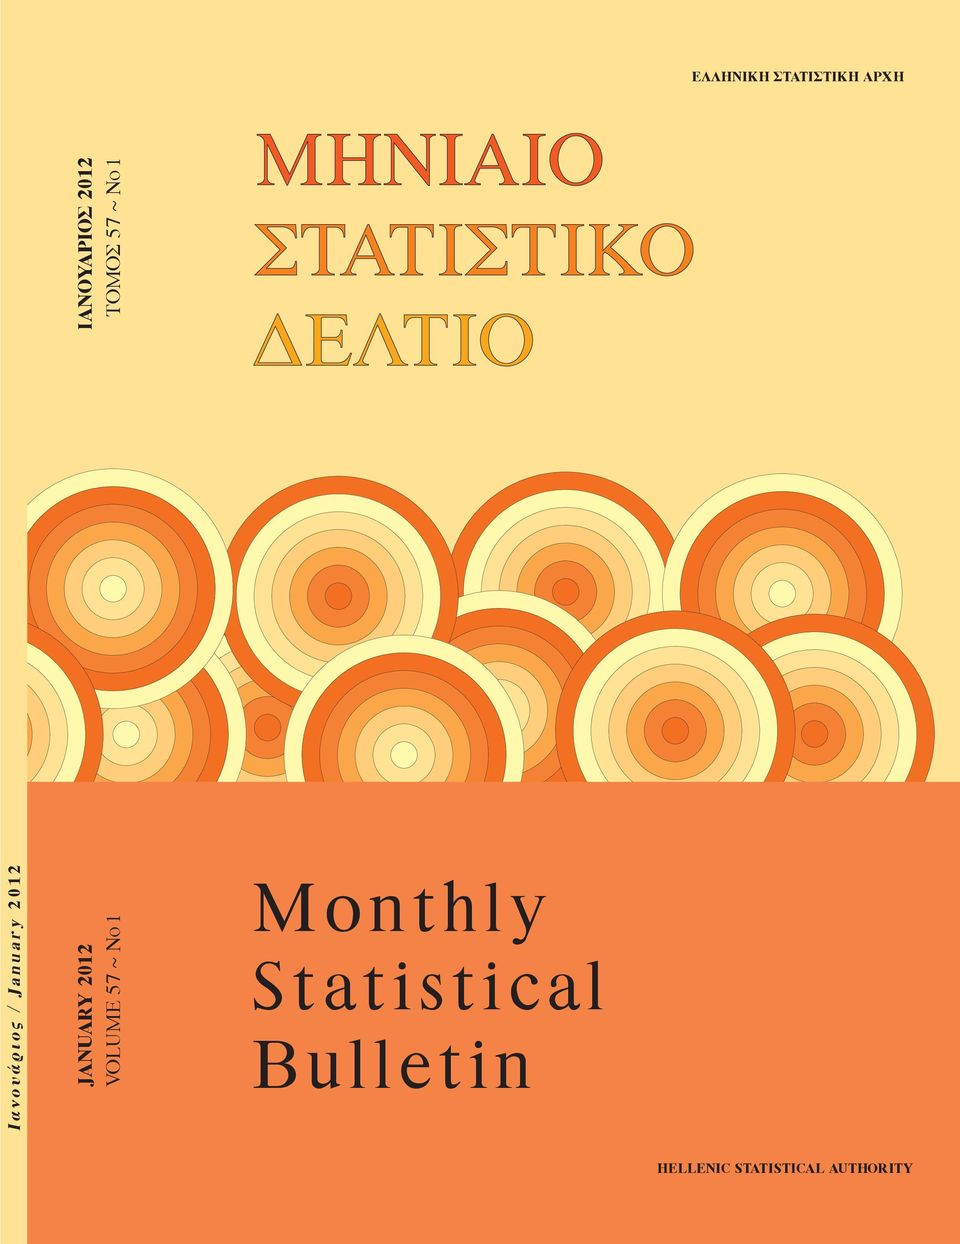 ~ Nο1 JANUARY 2012 VOLUME 57 ~ Nο1 Monthly